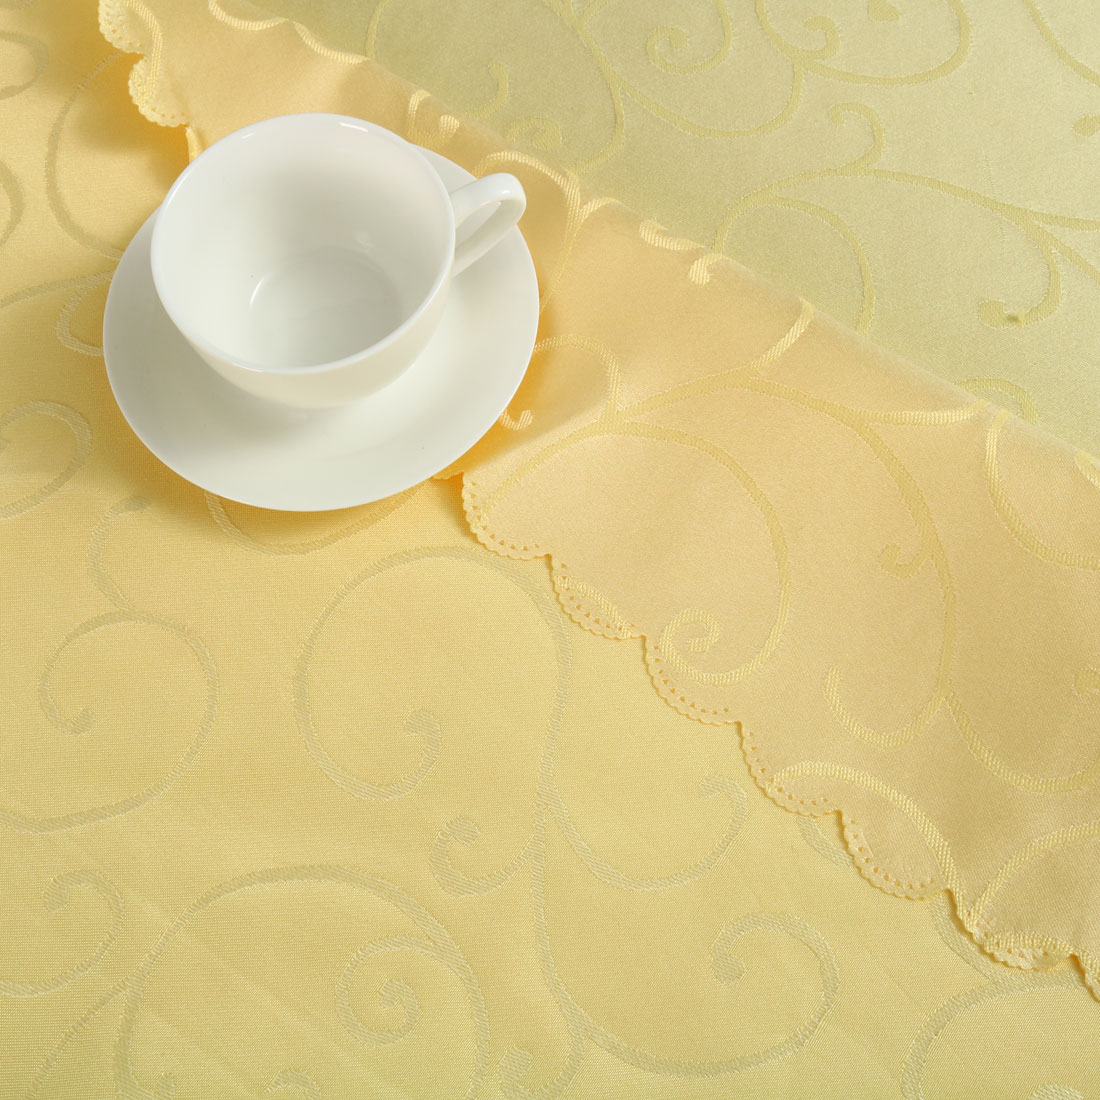 "Polyester Round Flower Pattern Tablecloth Water Stain Resistant Yellow 71"" Dia - image 1 of 4"